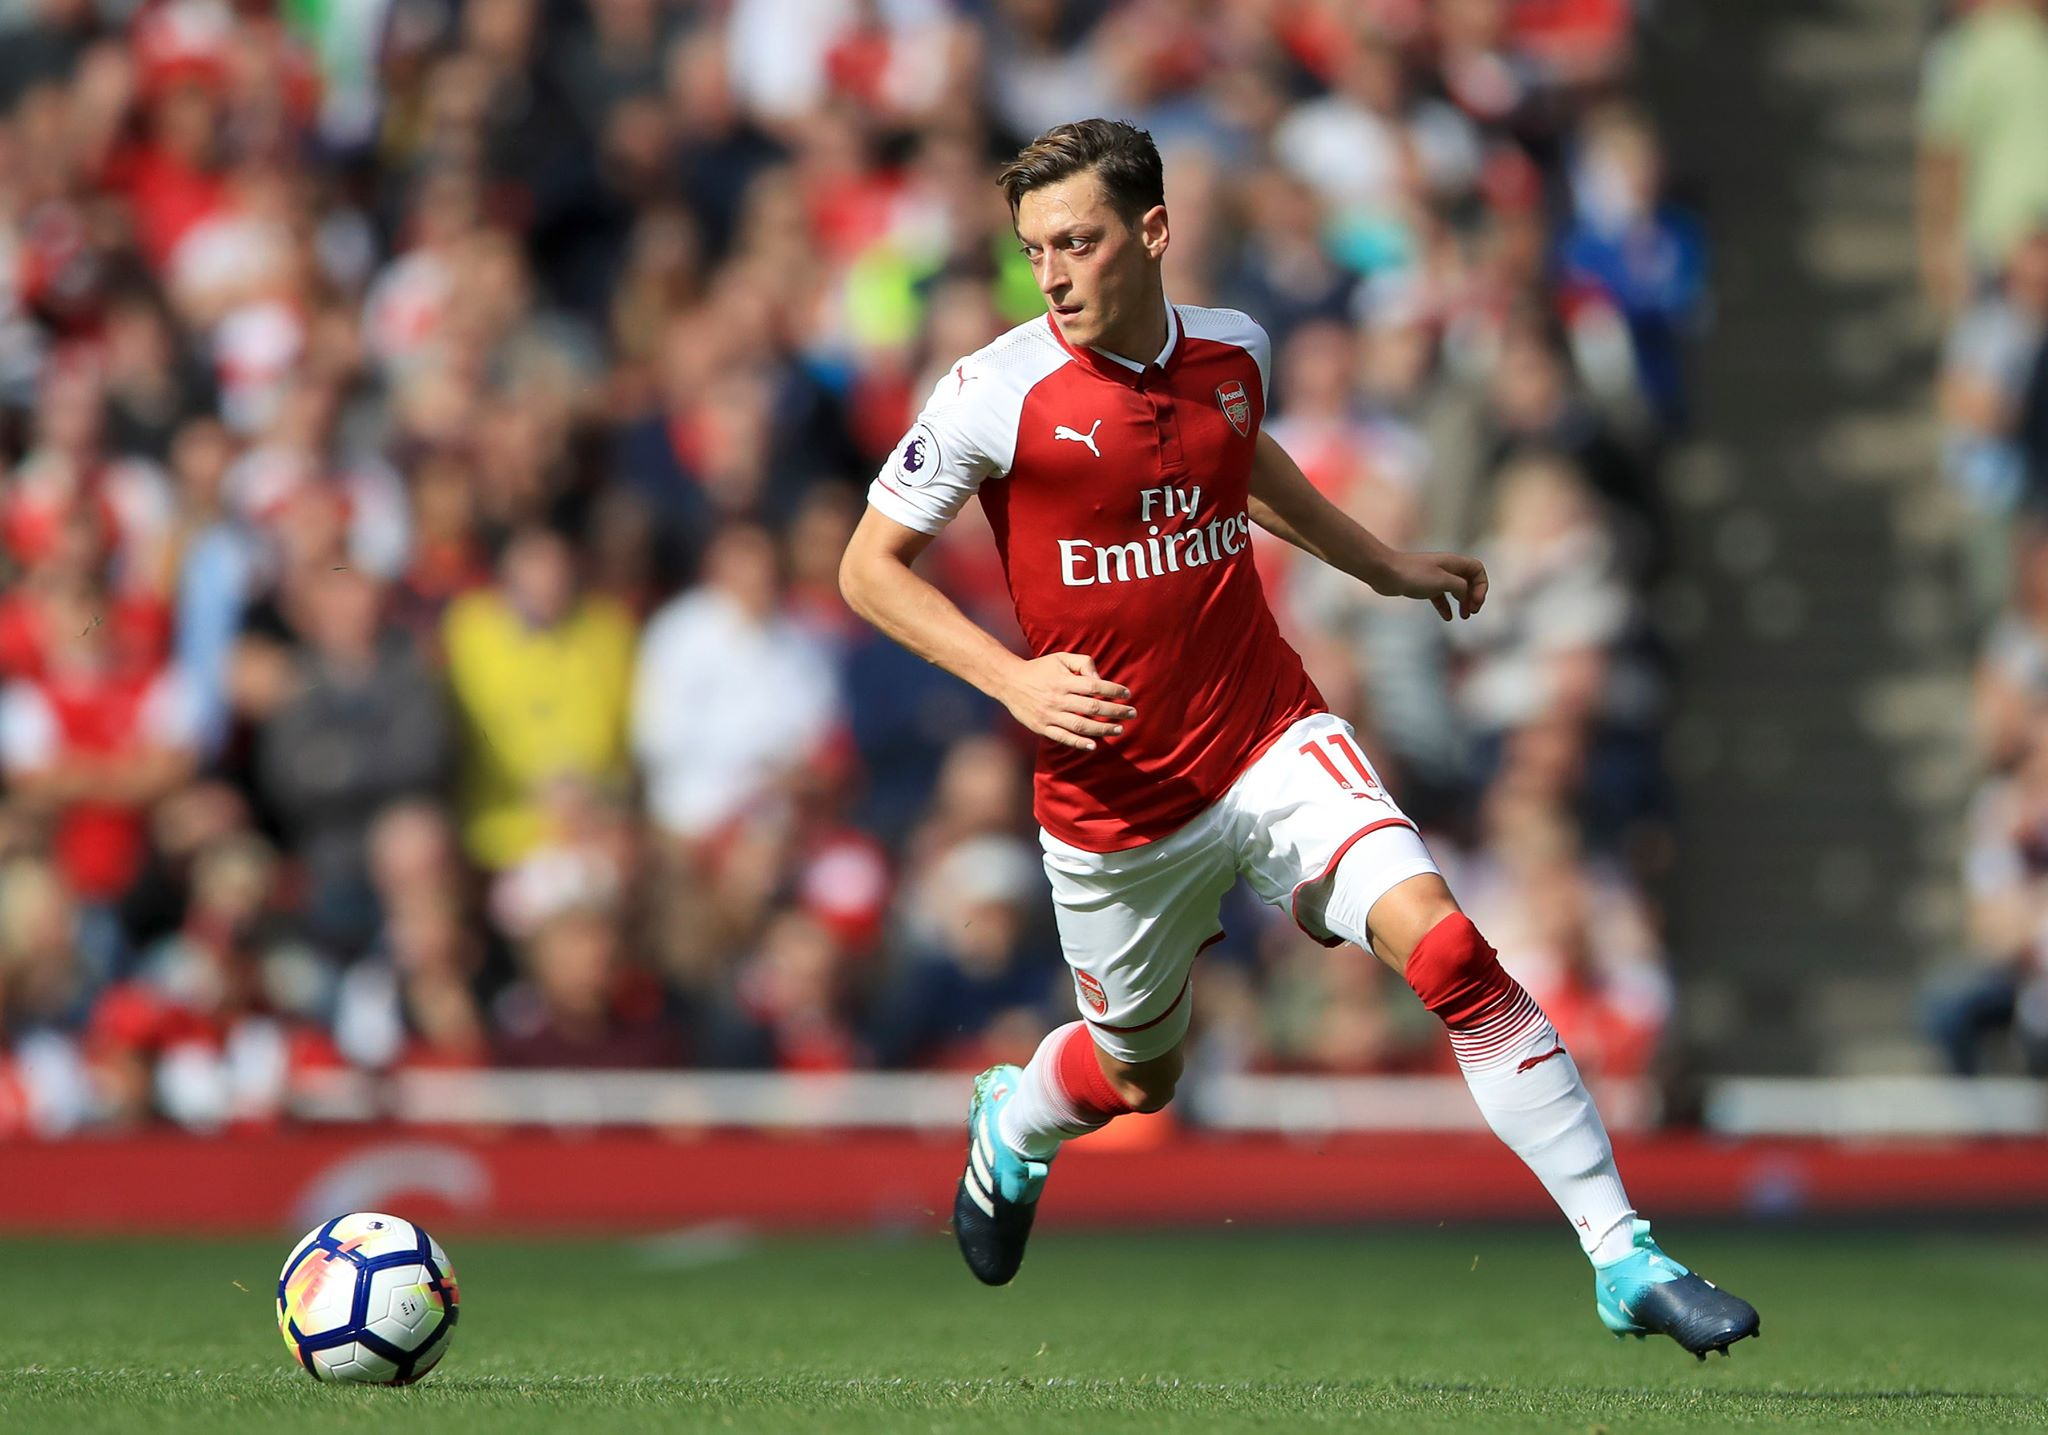 Report: Inter Milan prepares swoop for Mesut Ozil